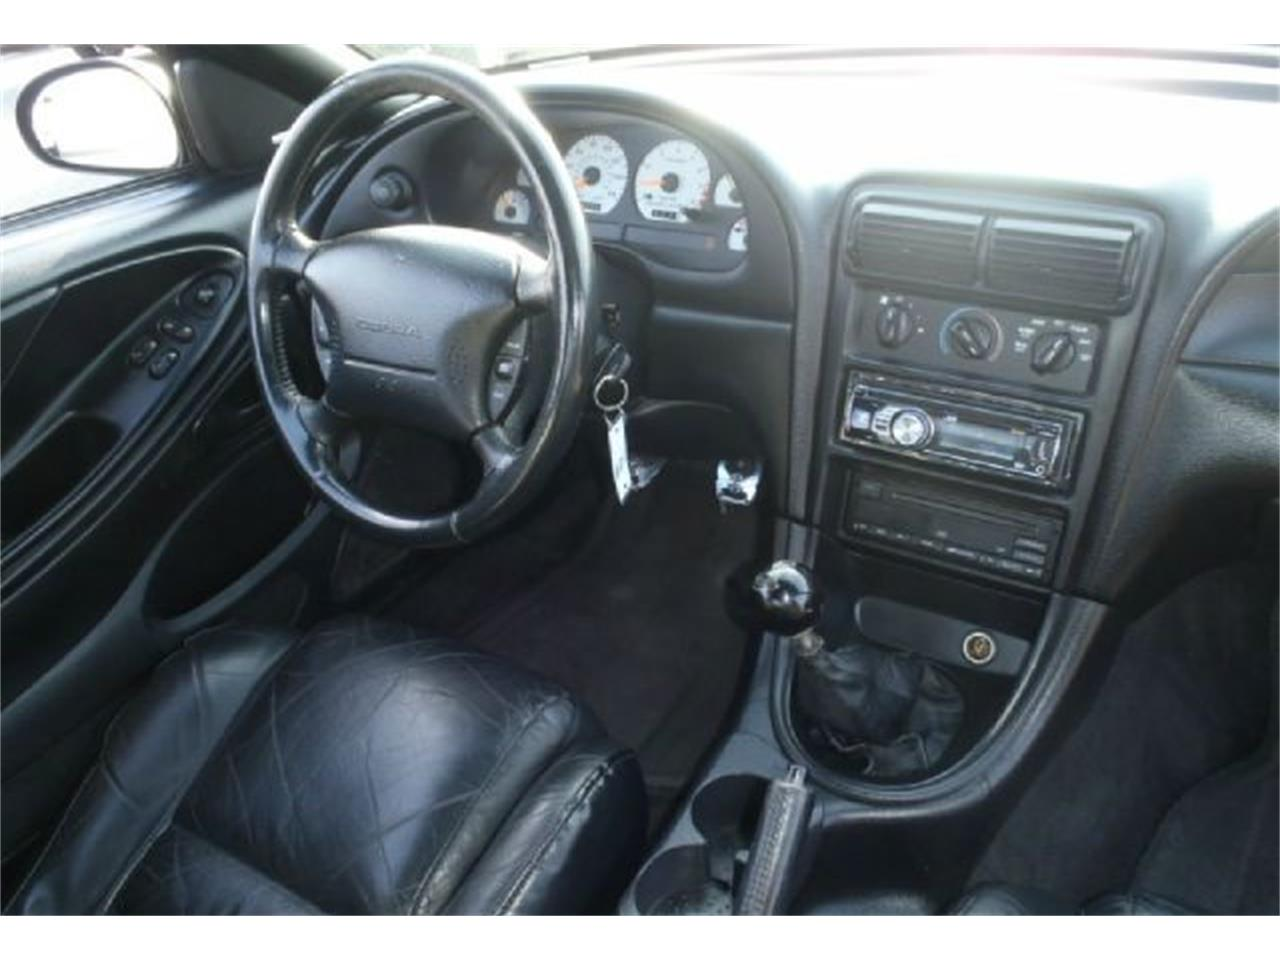 1998 Ford Mustang Cobra (CC-1135707) for sale in Stratford, New Jersey